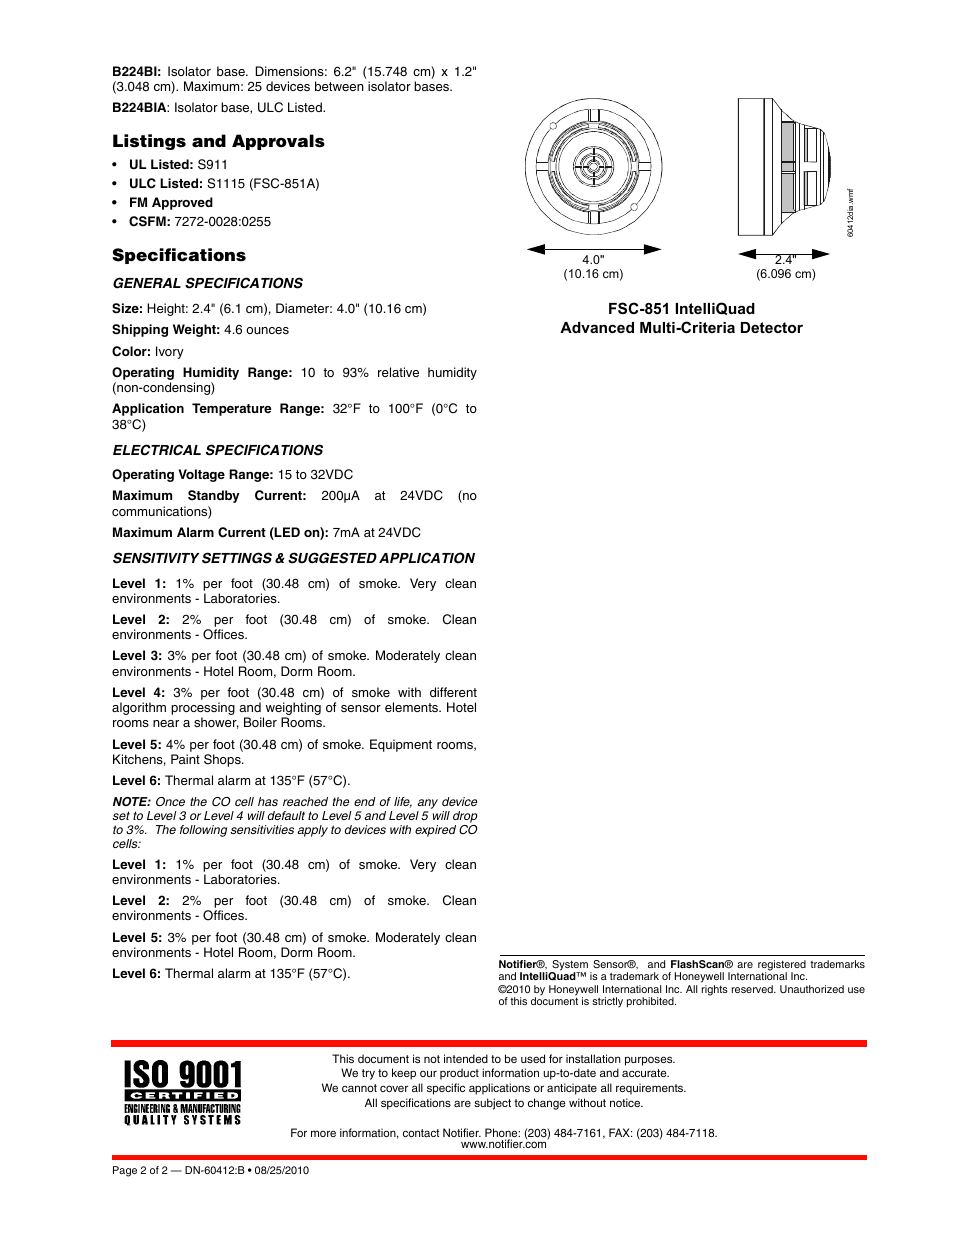 notifier nca 2 installation manual